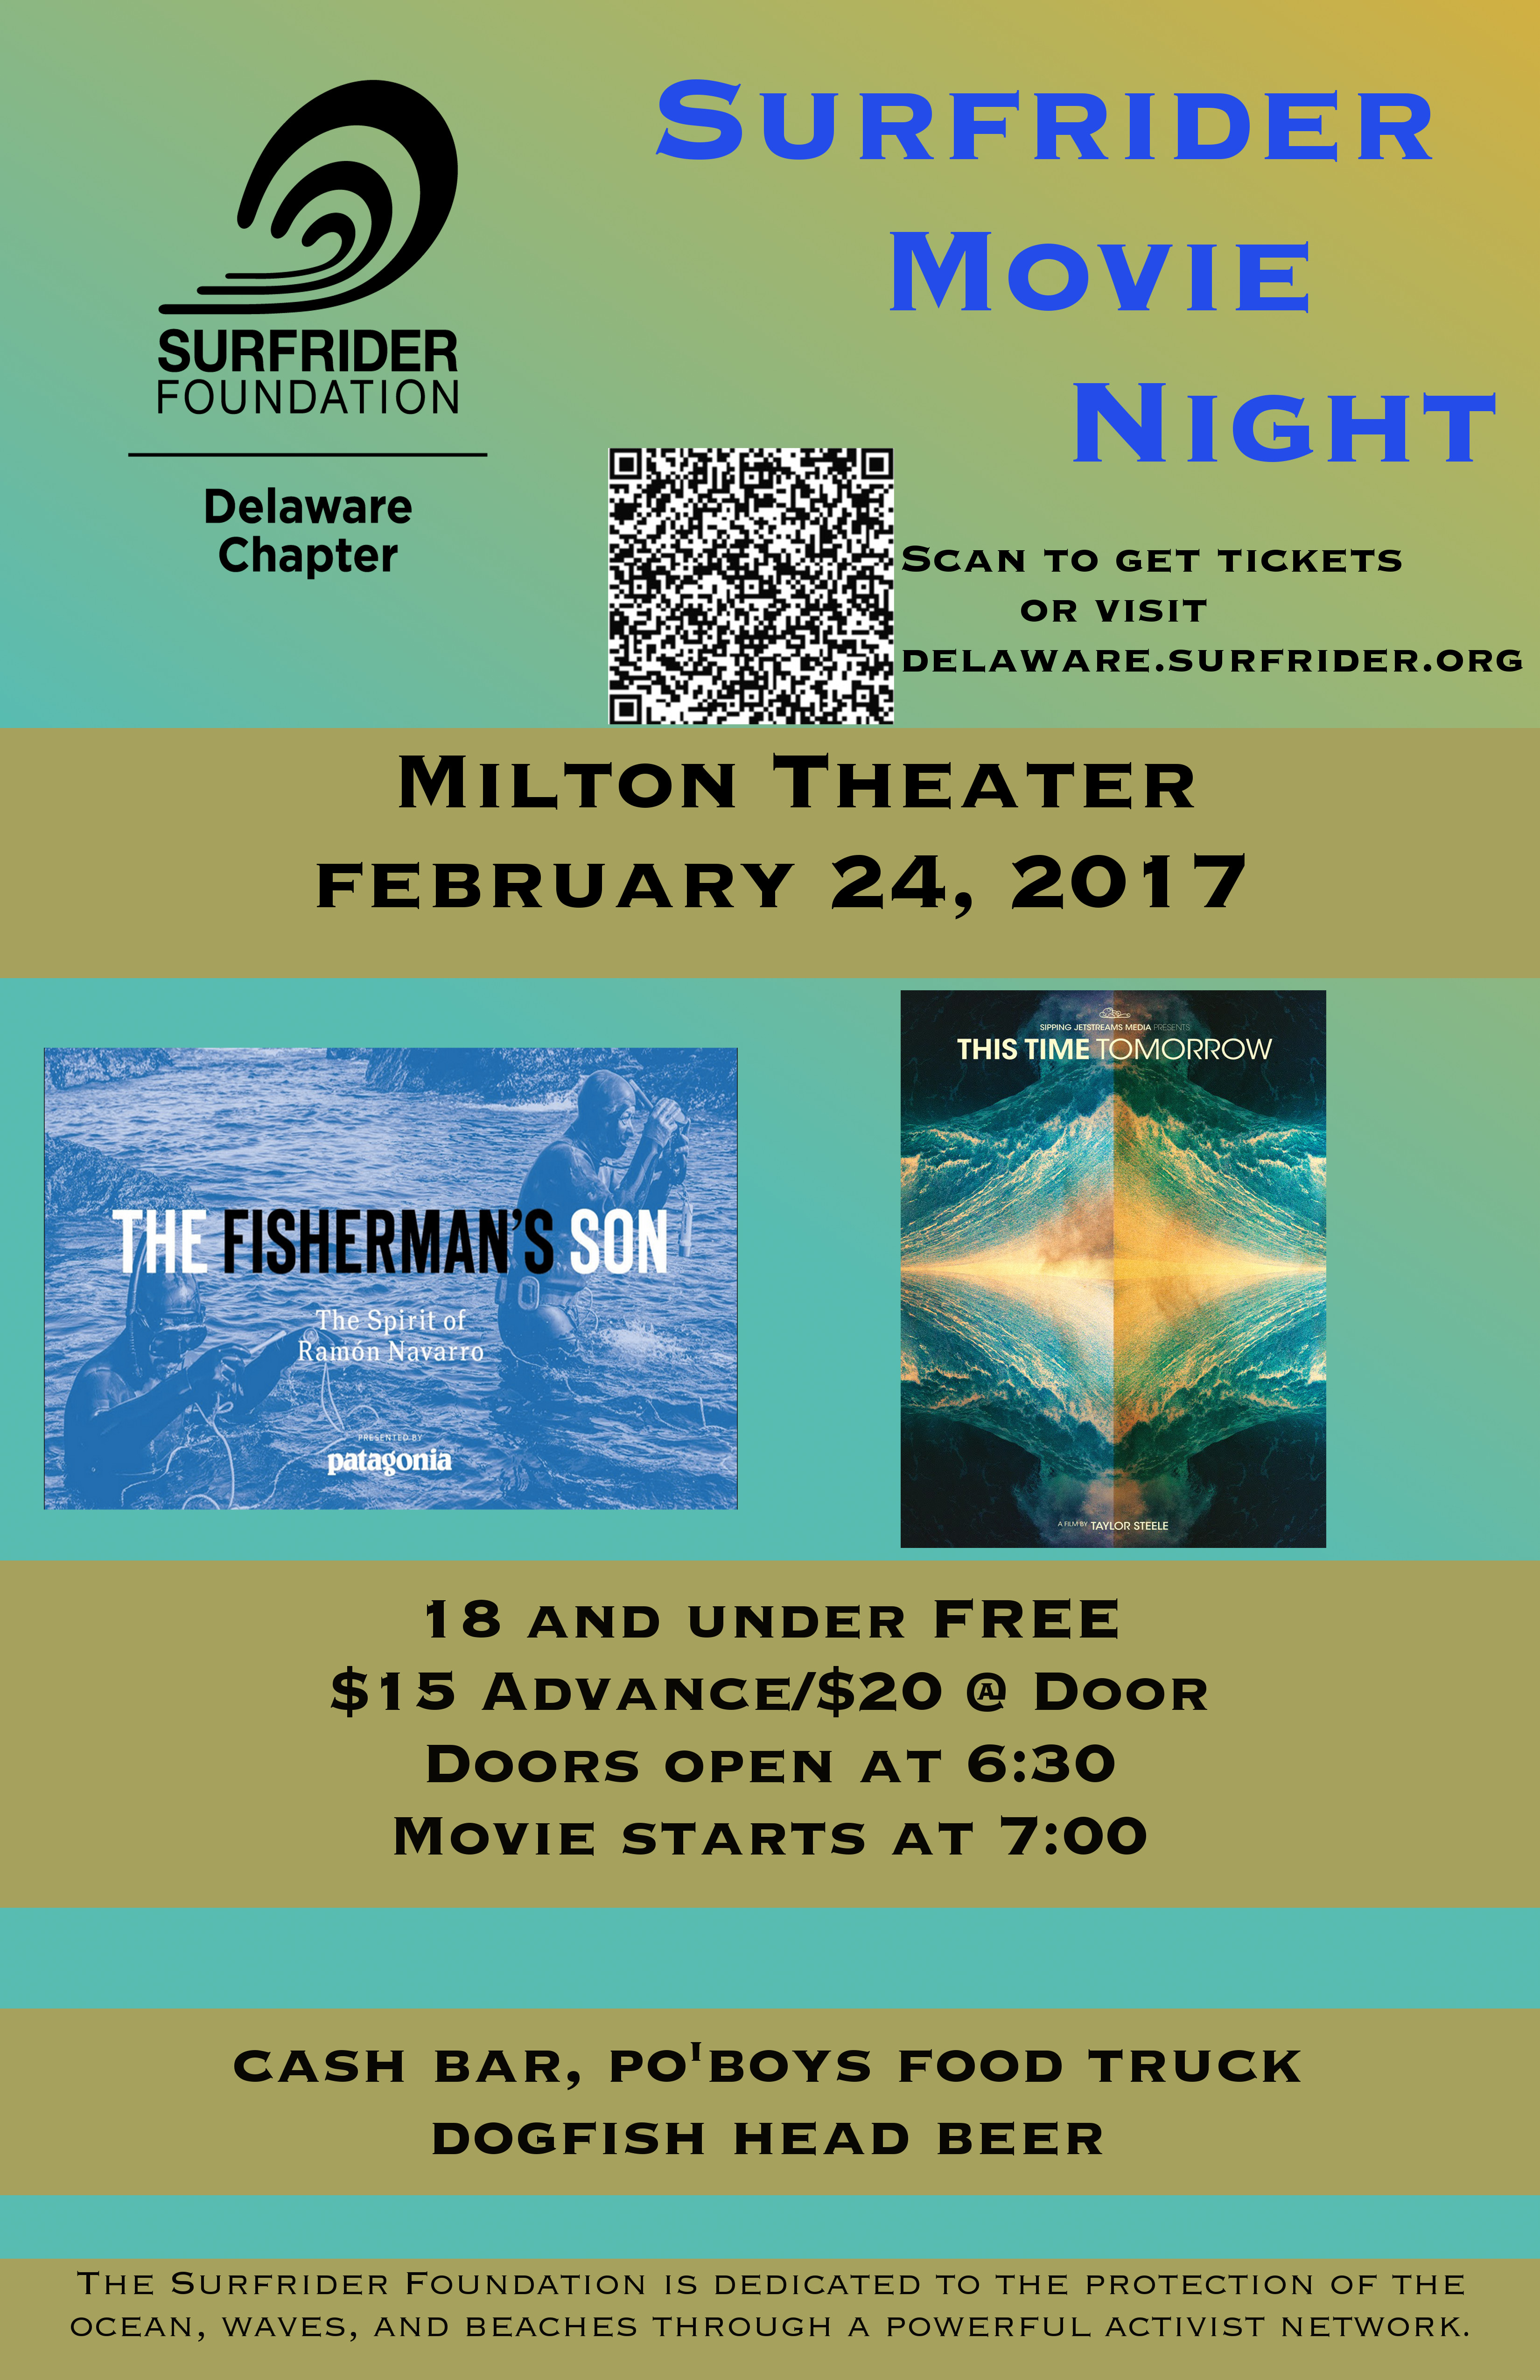 Delaware Surfrider Movie Night – Feb. 24 Milton Theatre